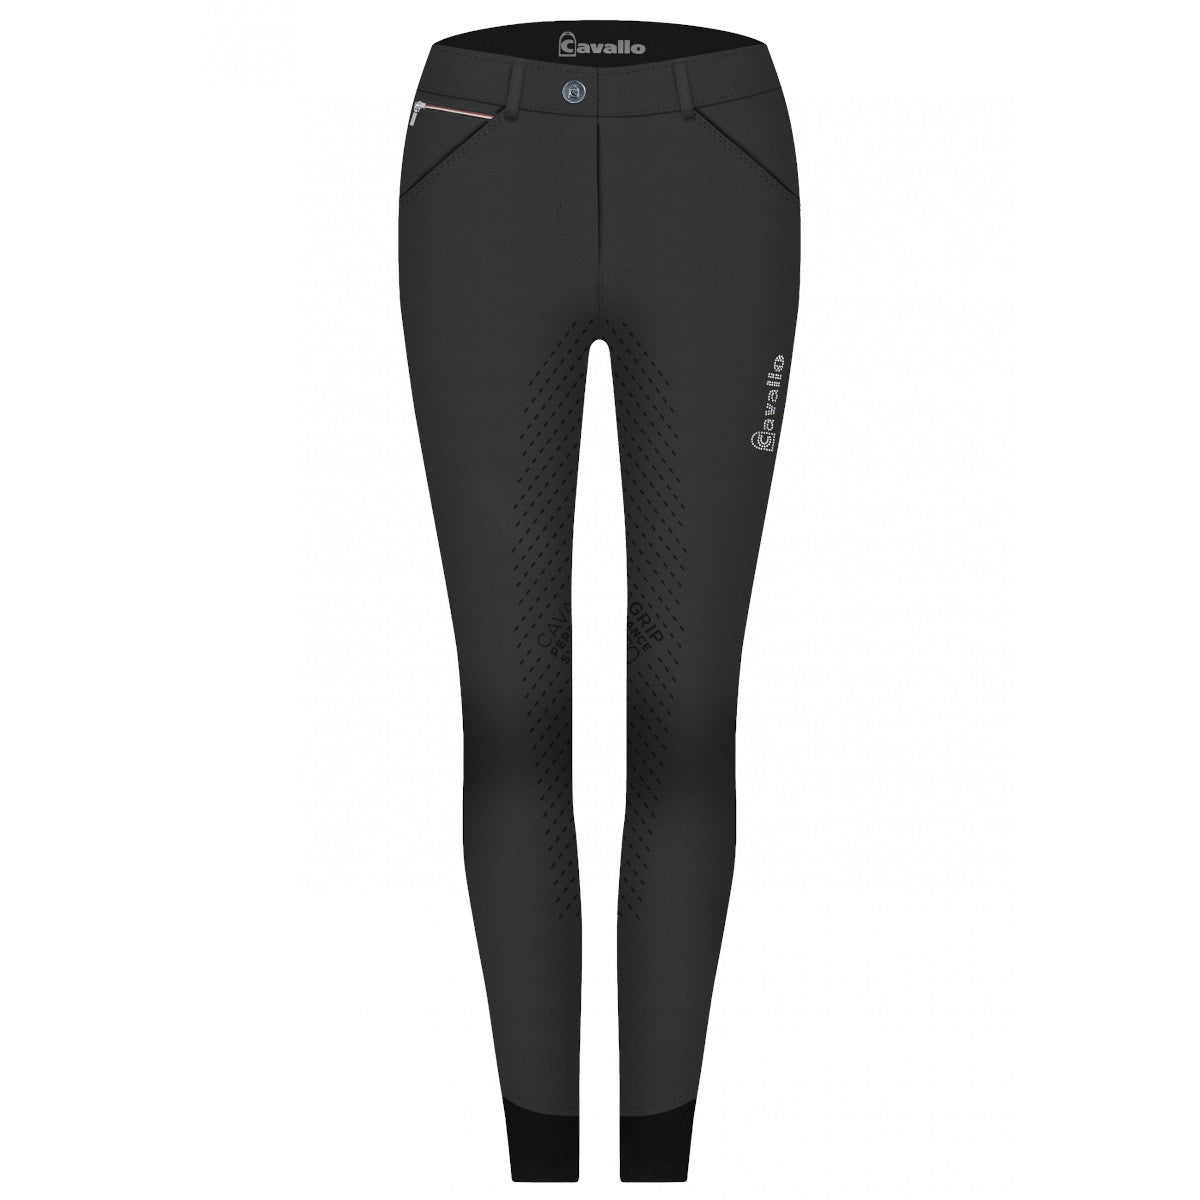 Cavallo Women's Calima Silicone Grip Breeches